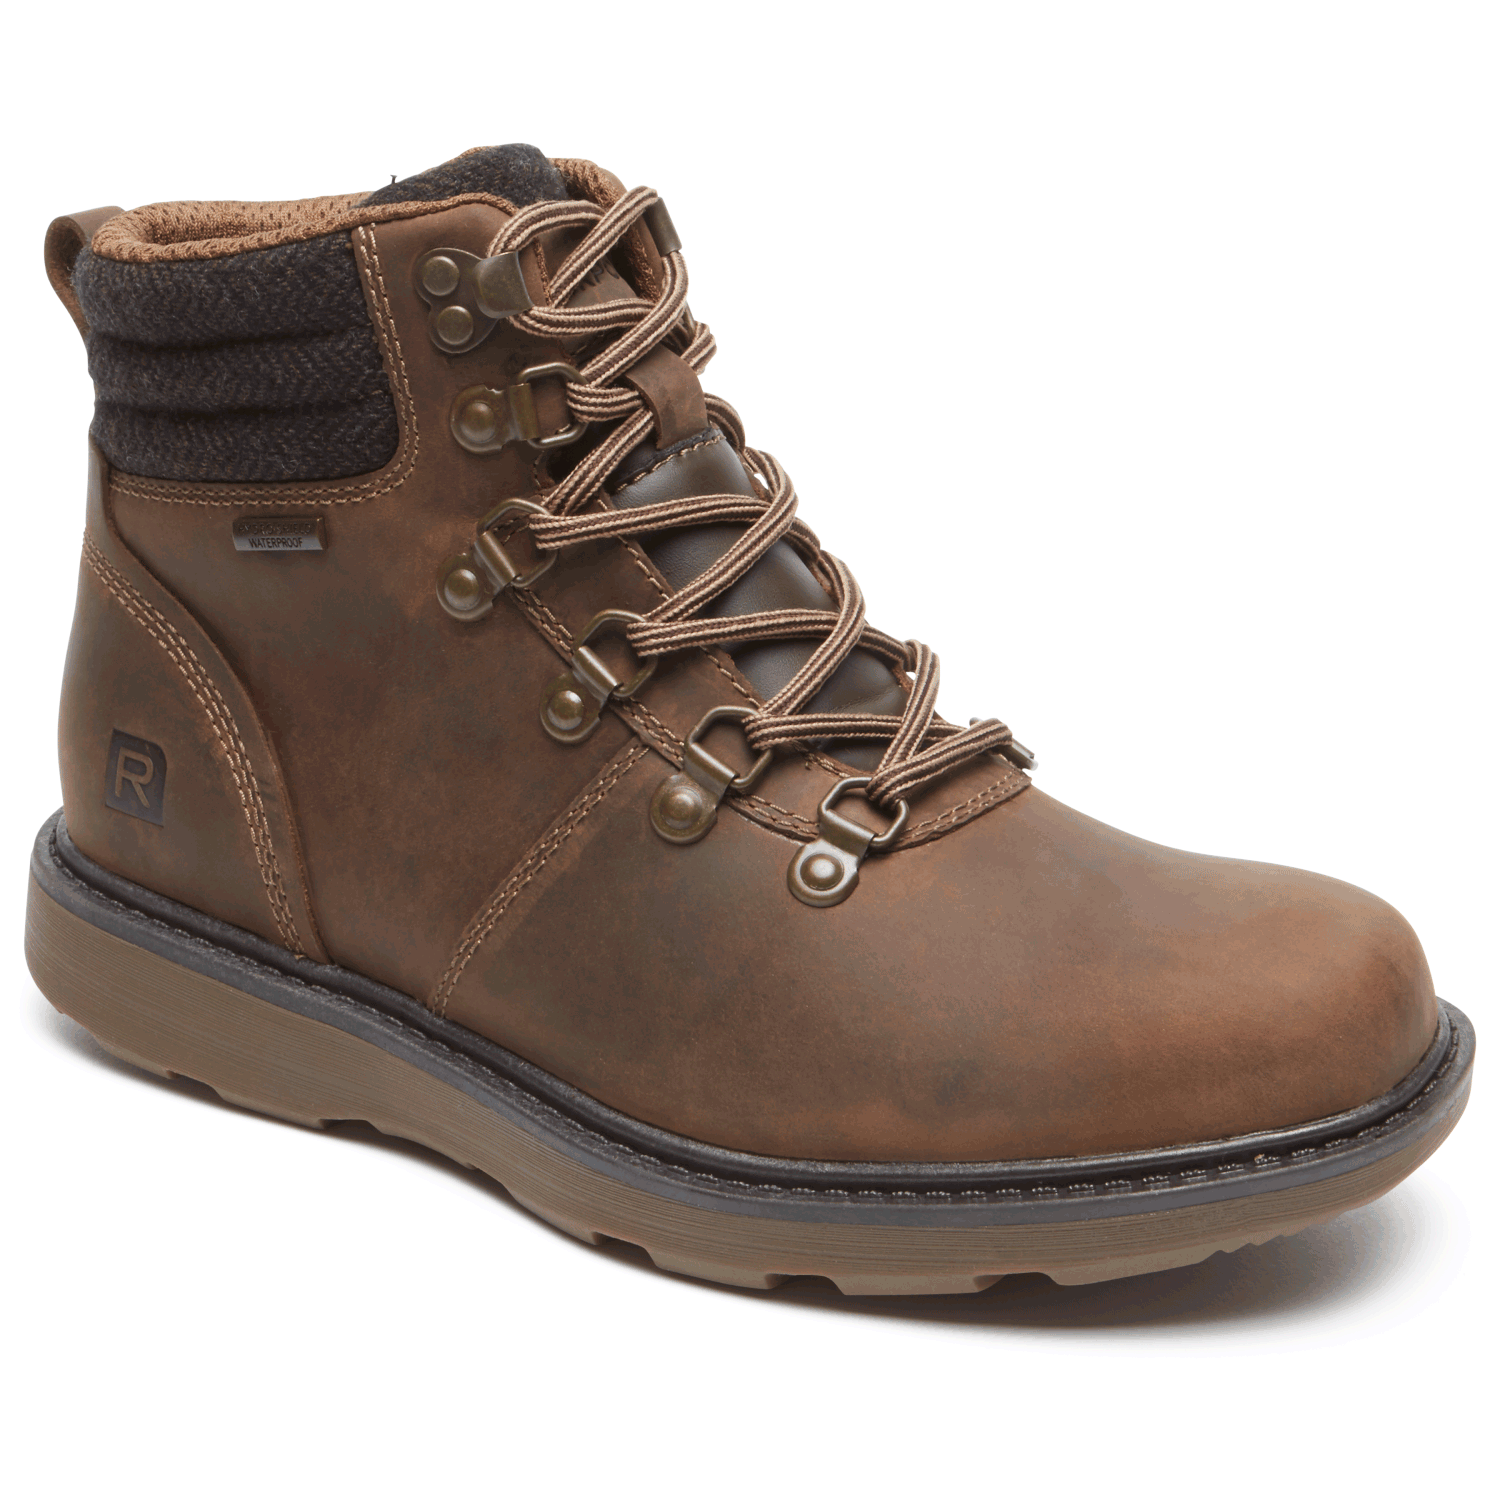 Boots PNG - 13582